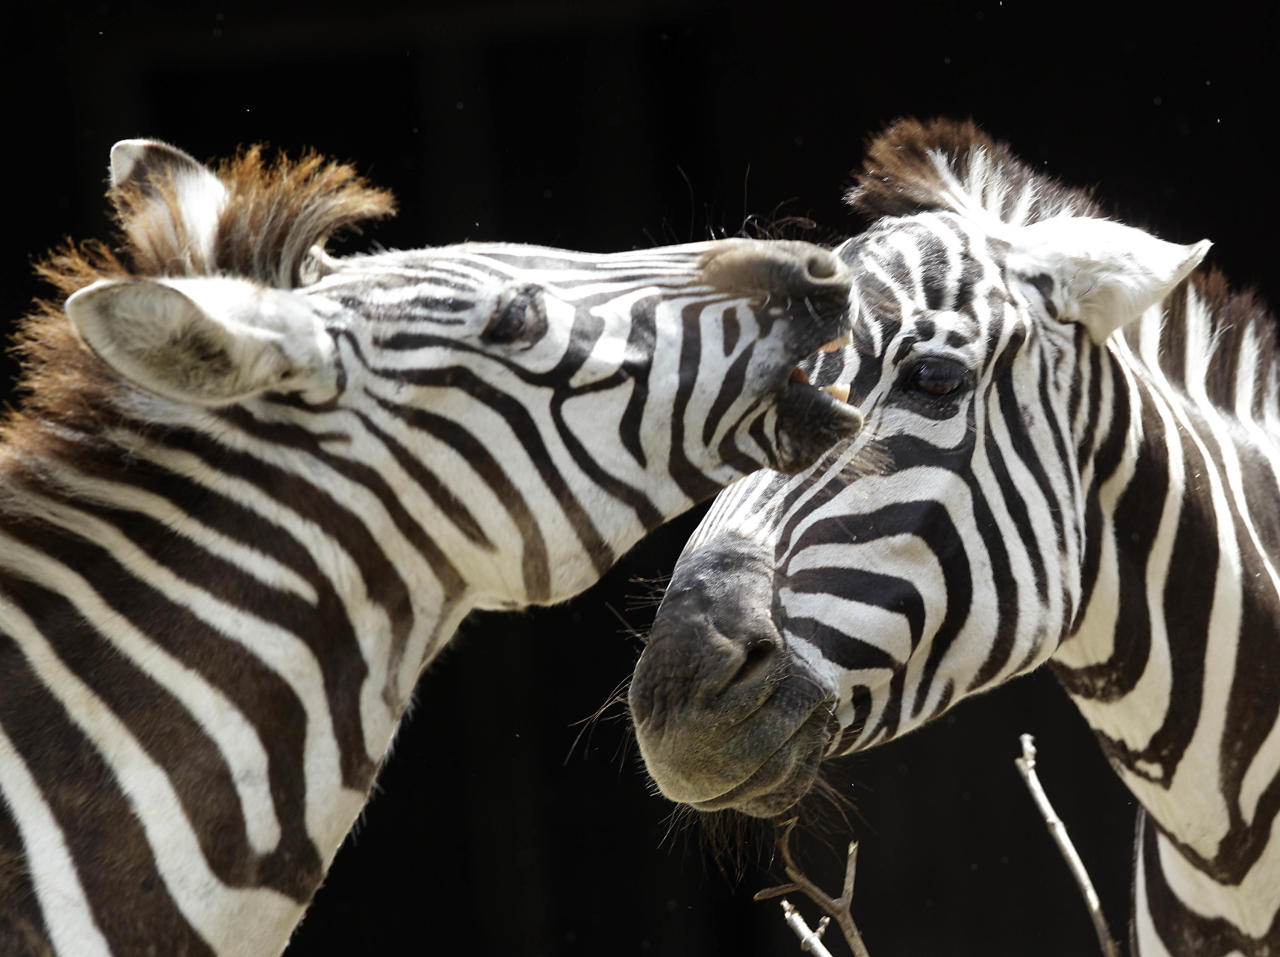 Zebras  stand in their enclosure  at the Zoo in Wuppertal, Germany, Thursday, July 12, 2012.(AP Photo/Frank Augstein)